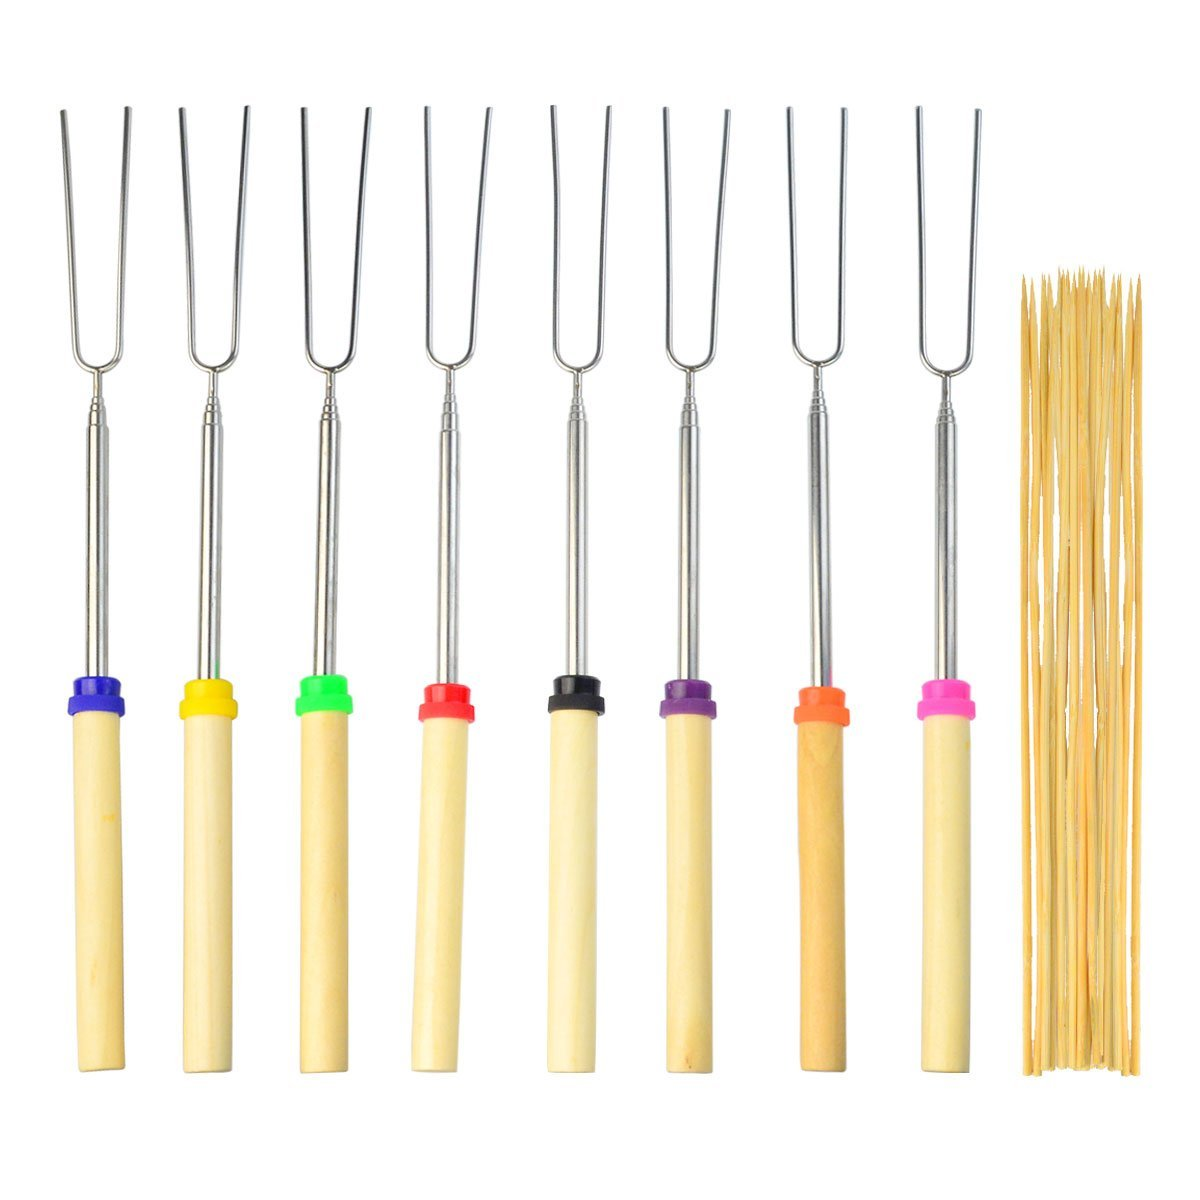 Lee-buty 12 Pcs Marshmallow Roasting Sticks Telescoping Forks Extending Roaster and 20 Pcs Bamboo Skewers with Color-Coded Wood Handles and Carrying Pouch 32 Inch for BBQ,Campfire,Bonfire Kids,Camping